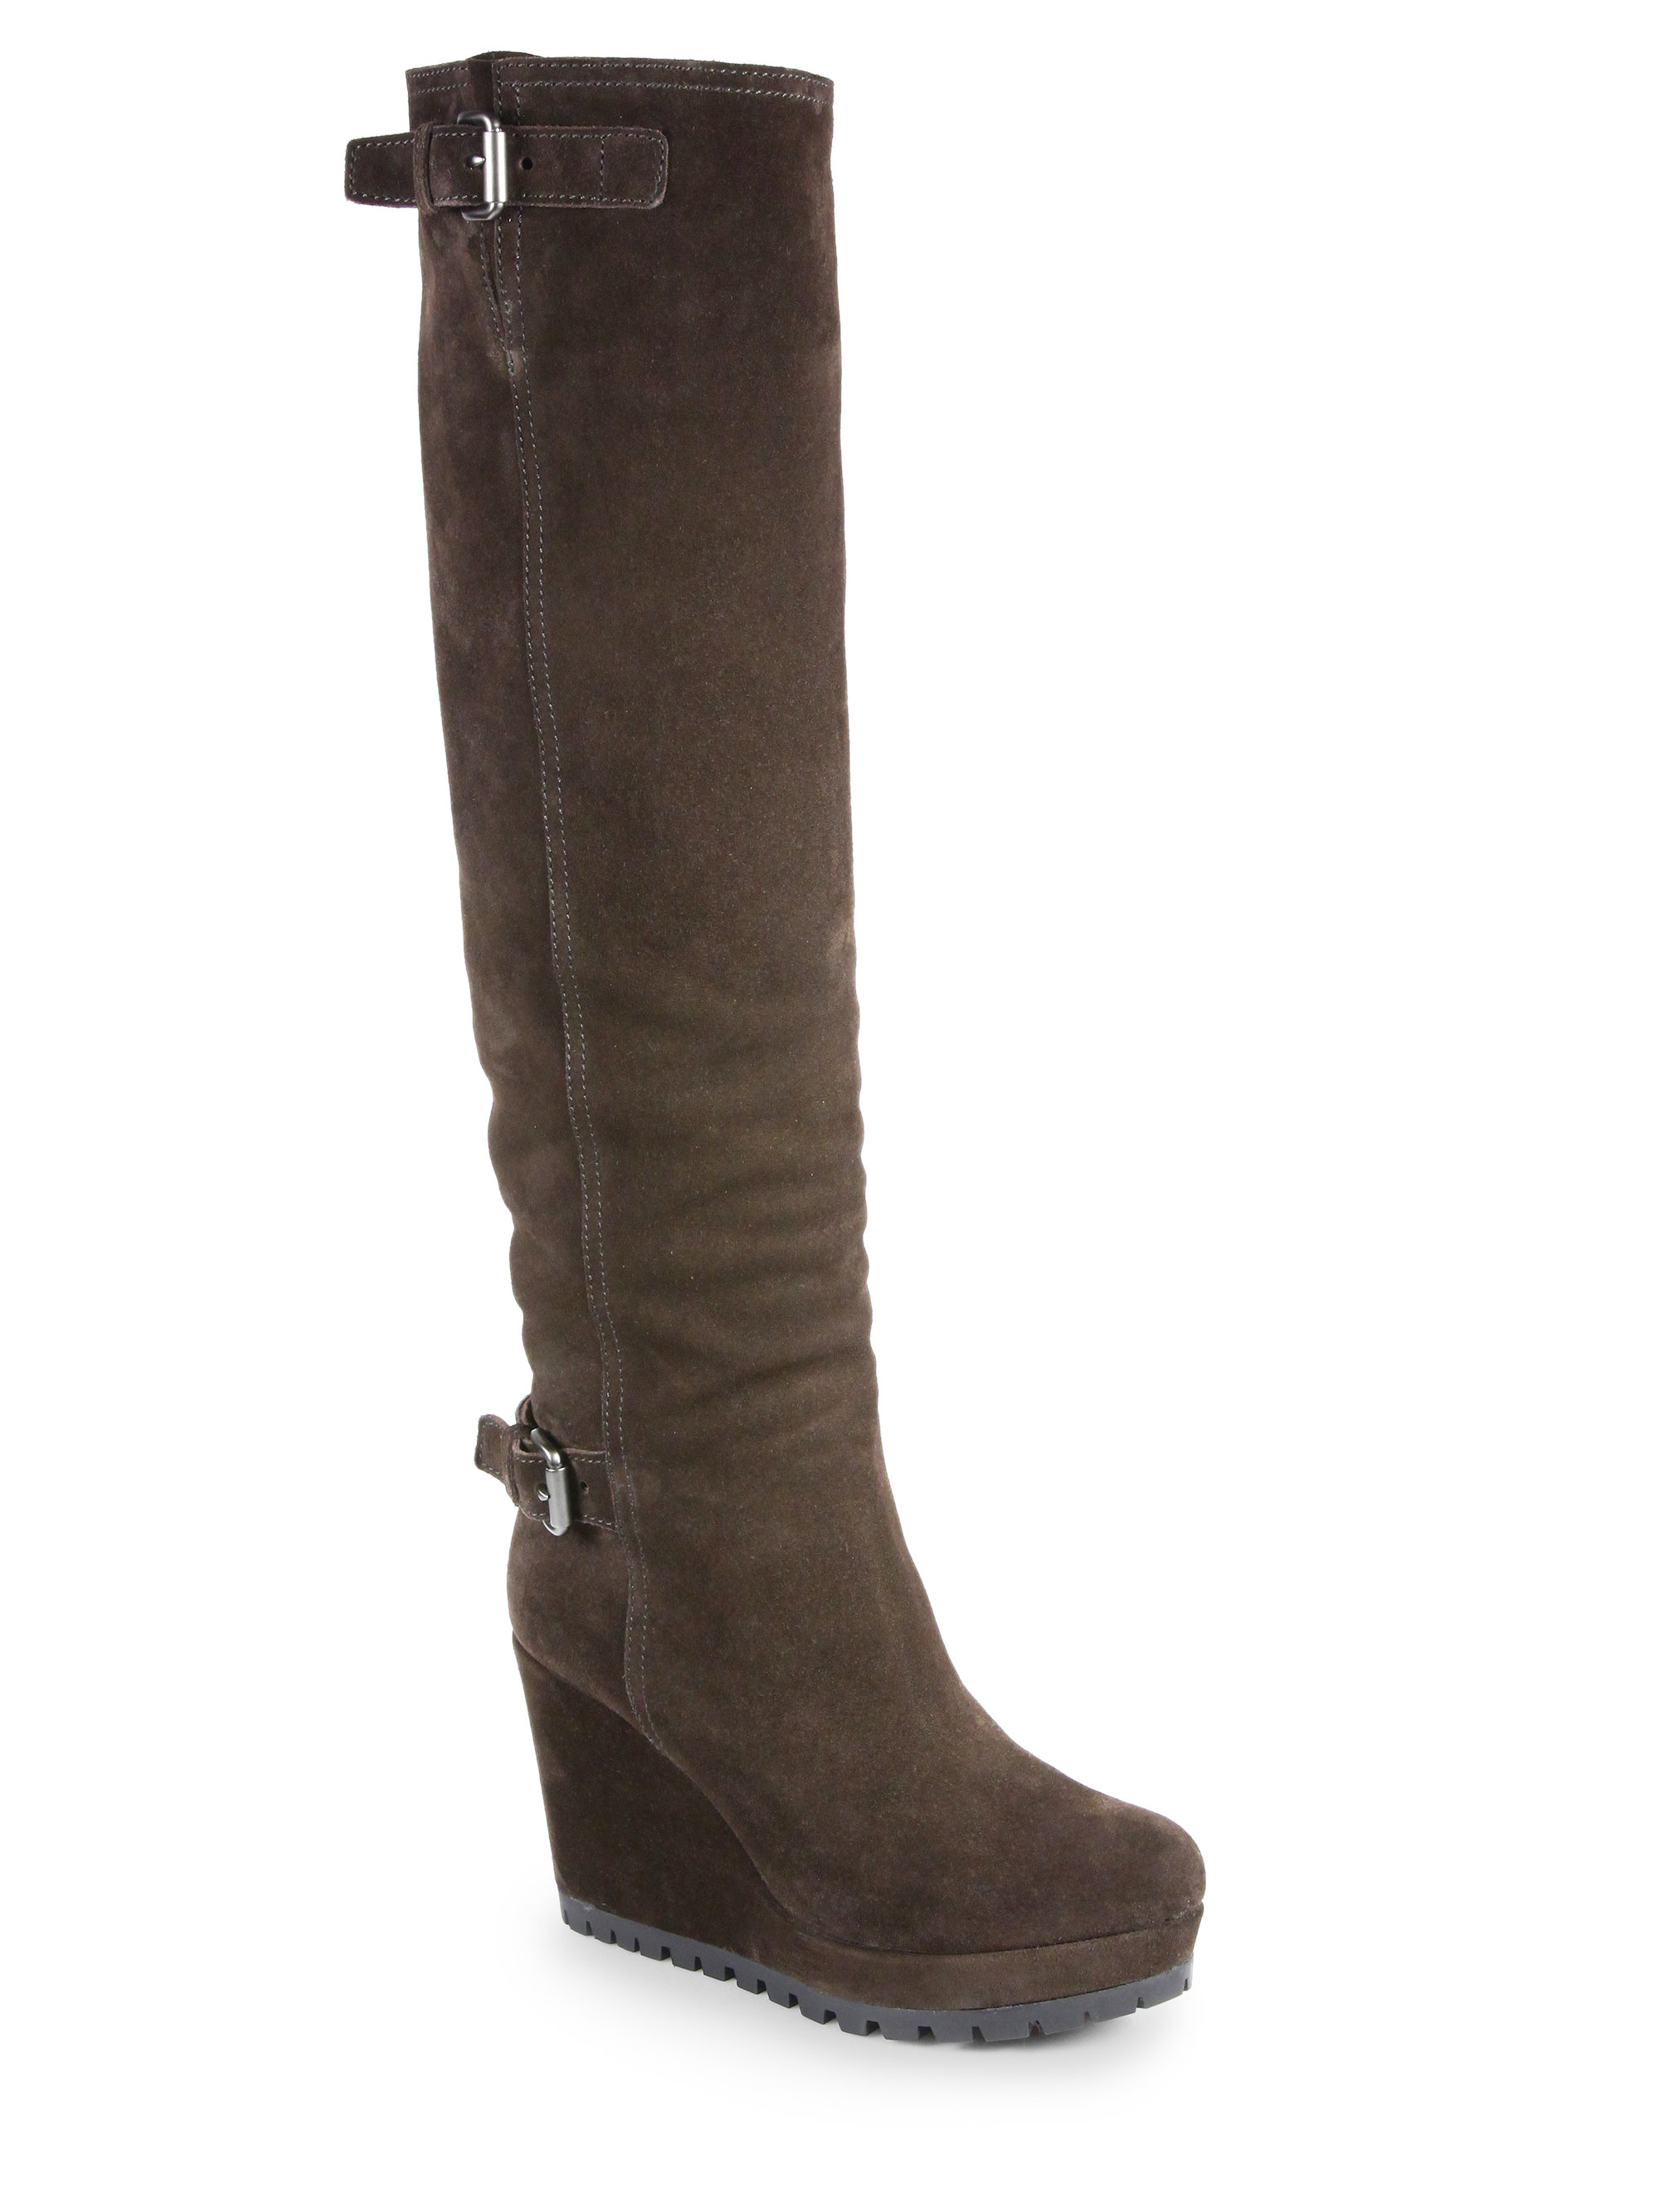 prada suede kneehigh wedge boots in brown moro brown lyst